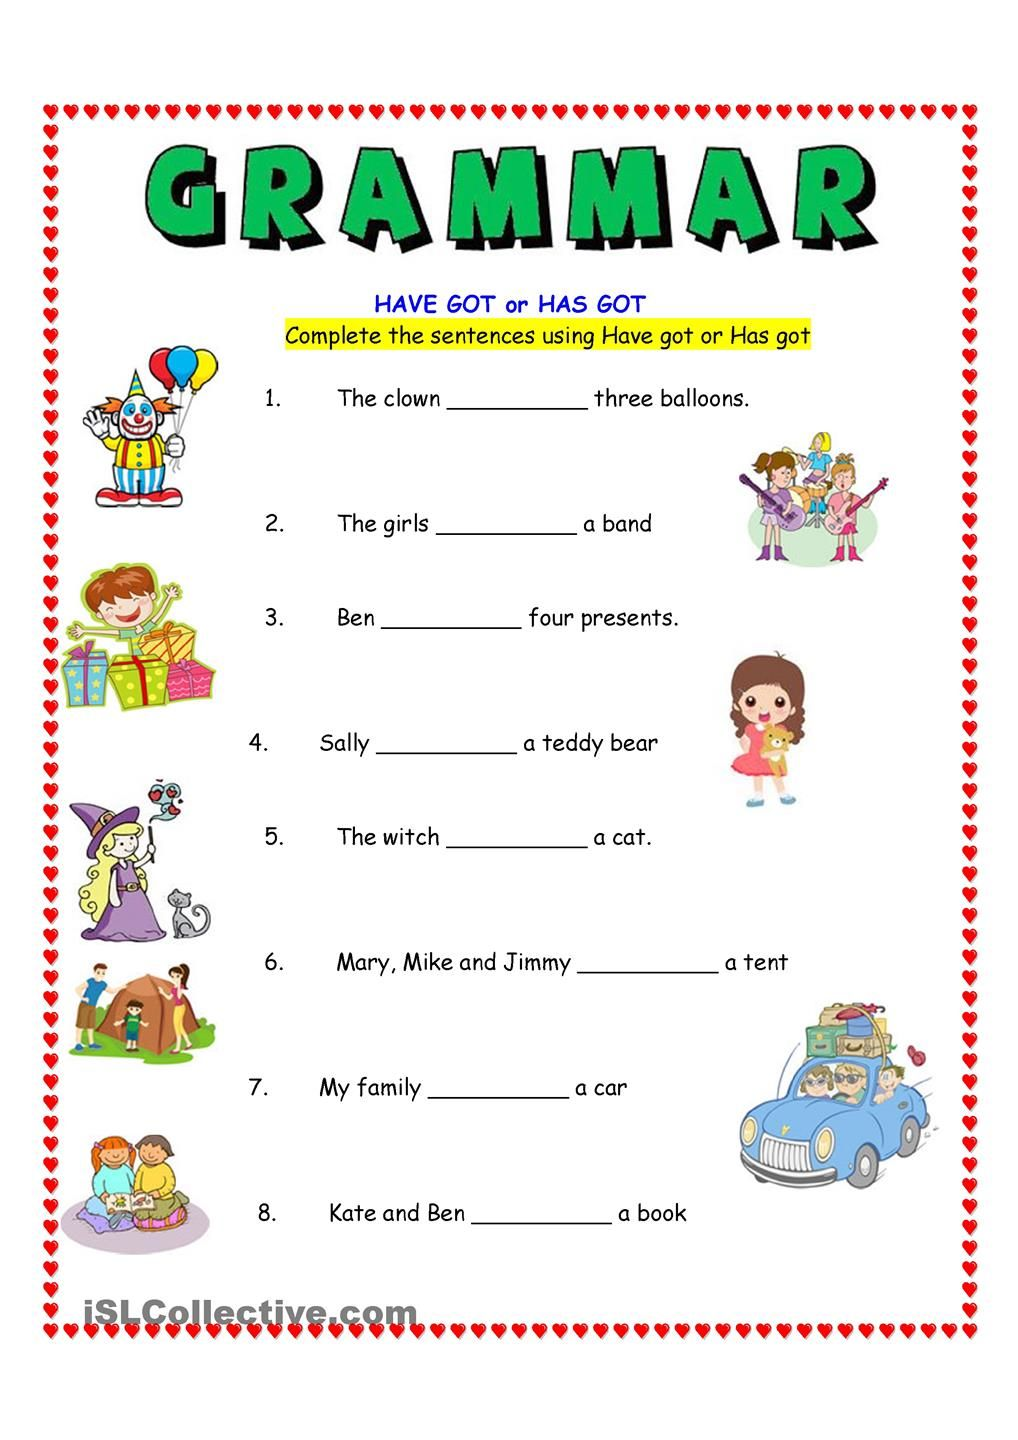 worksheet Has And Have Worksheets have got or has grammar pinterest english worksheets and got